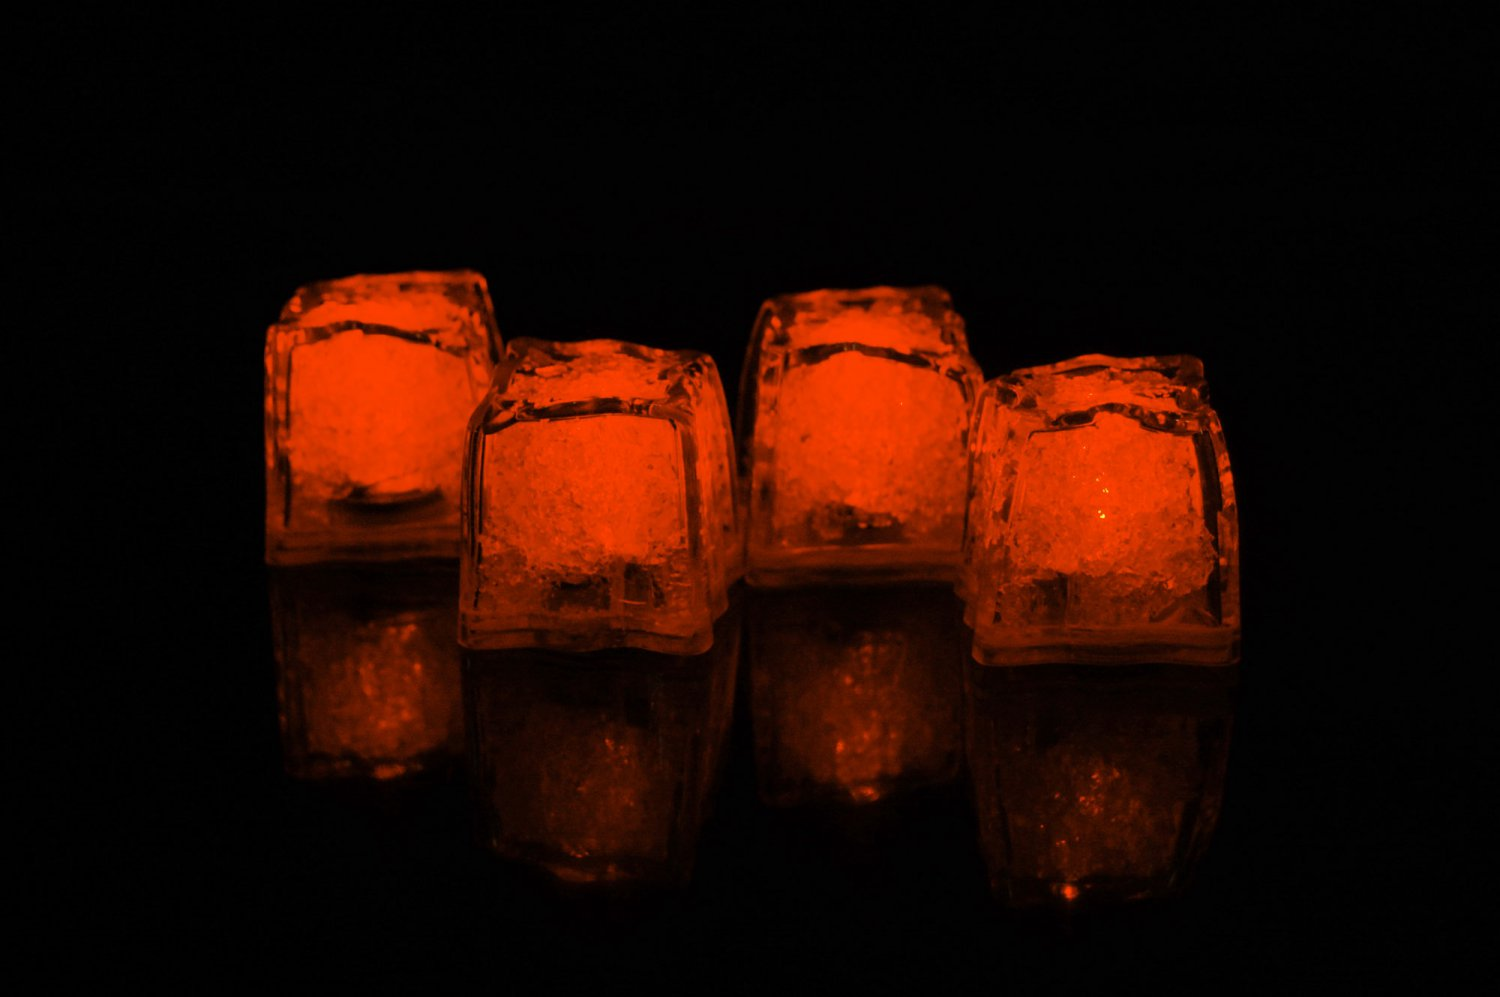 Set of 4 Litecubes  Brand Jewel Color Tinted Amber Orange Light up LED Ice Cubes